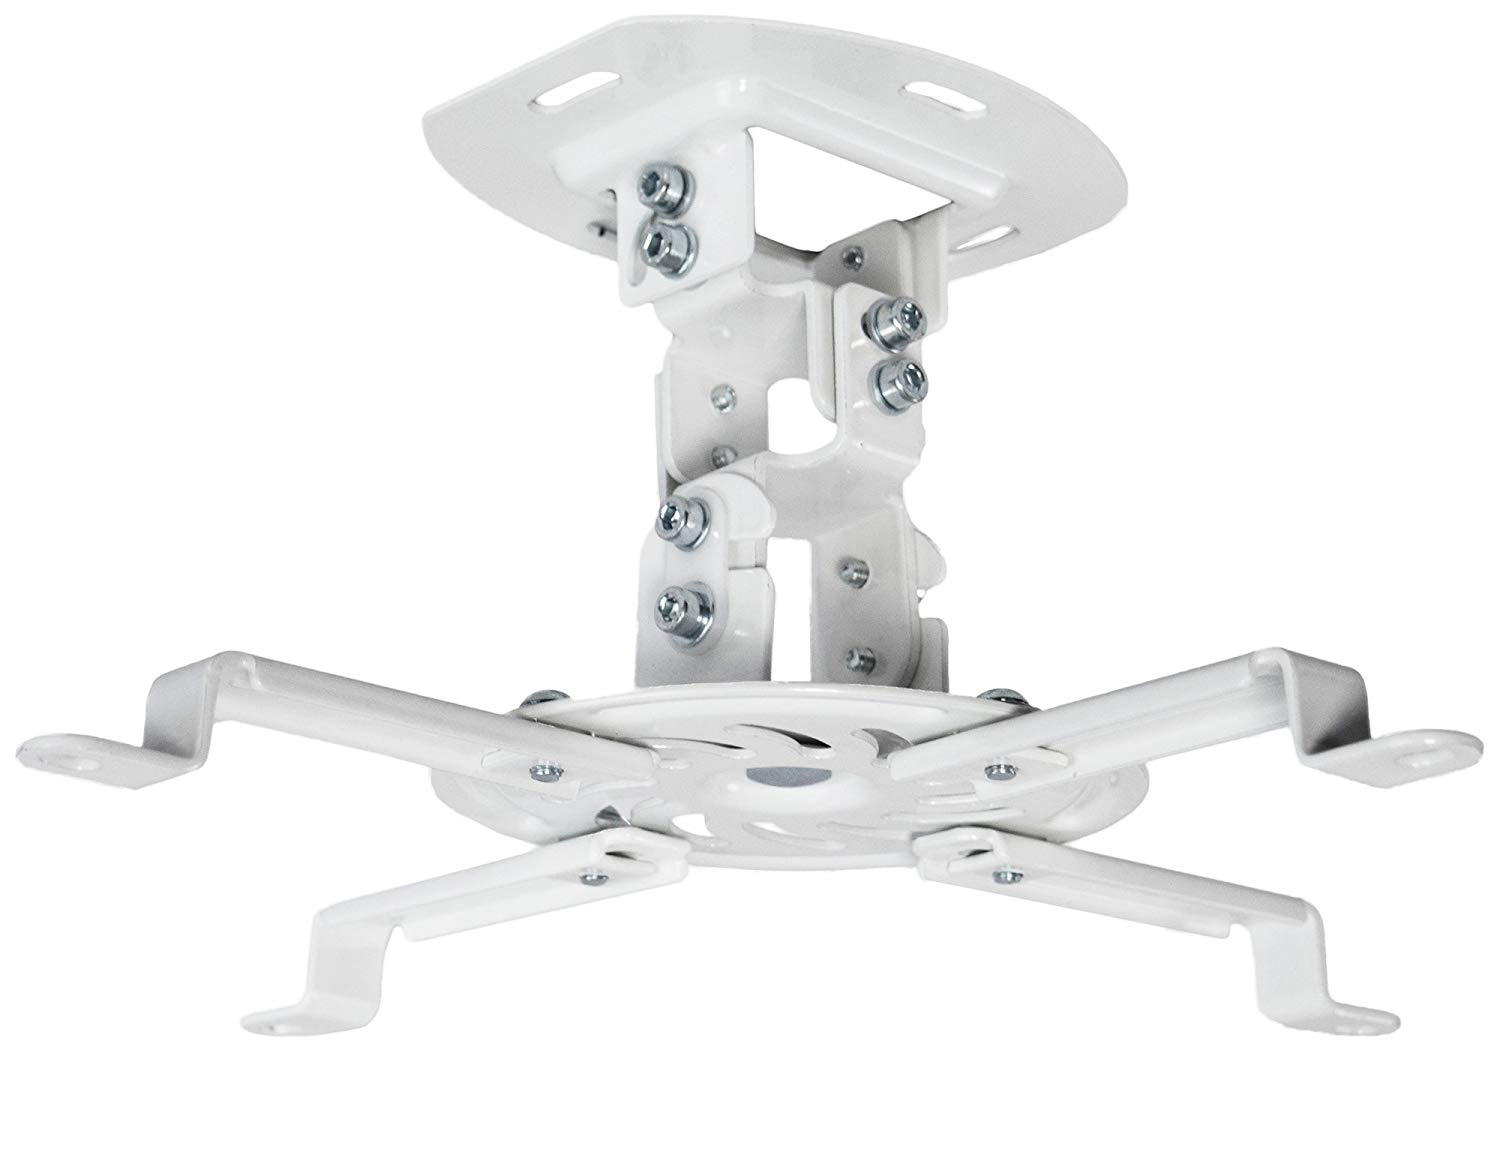 VIVO Universal Ceiling Projector Mount